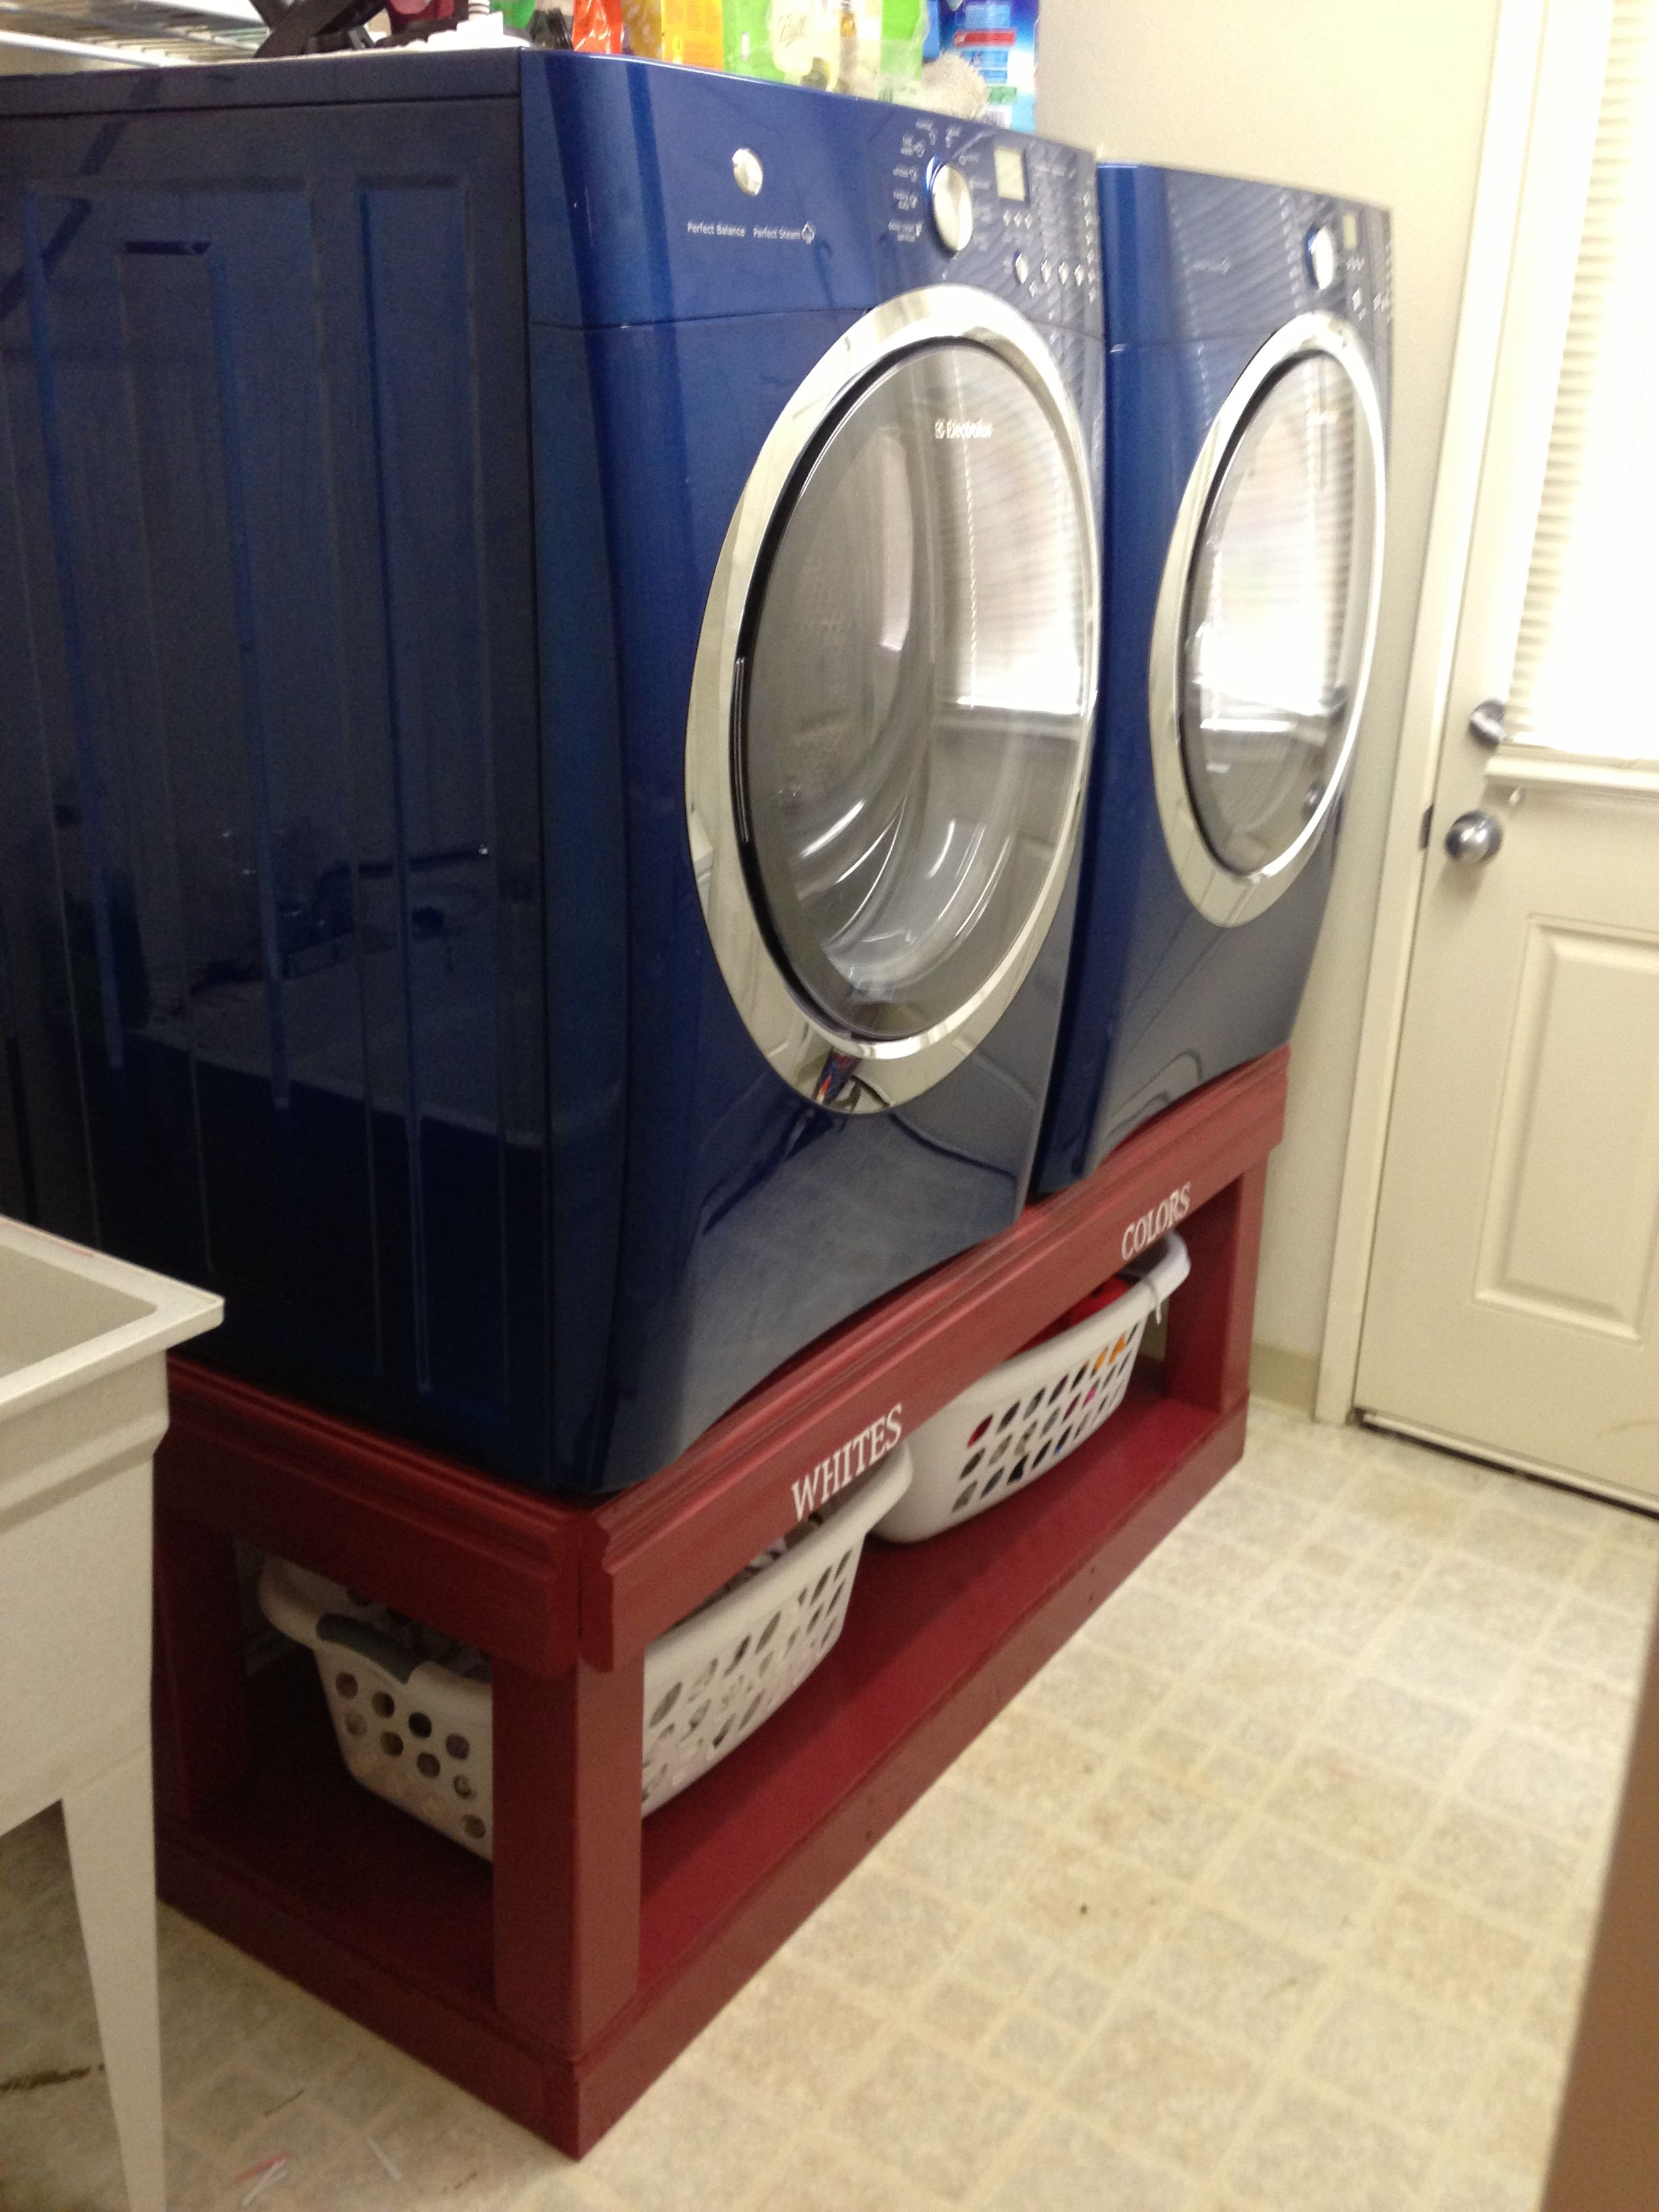 Front Loader Washer And Dryer Pedestals I Like This Idea To Raise